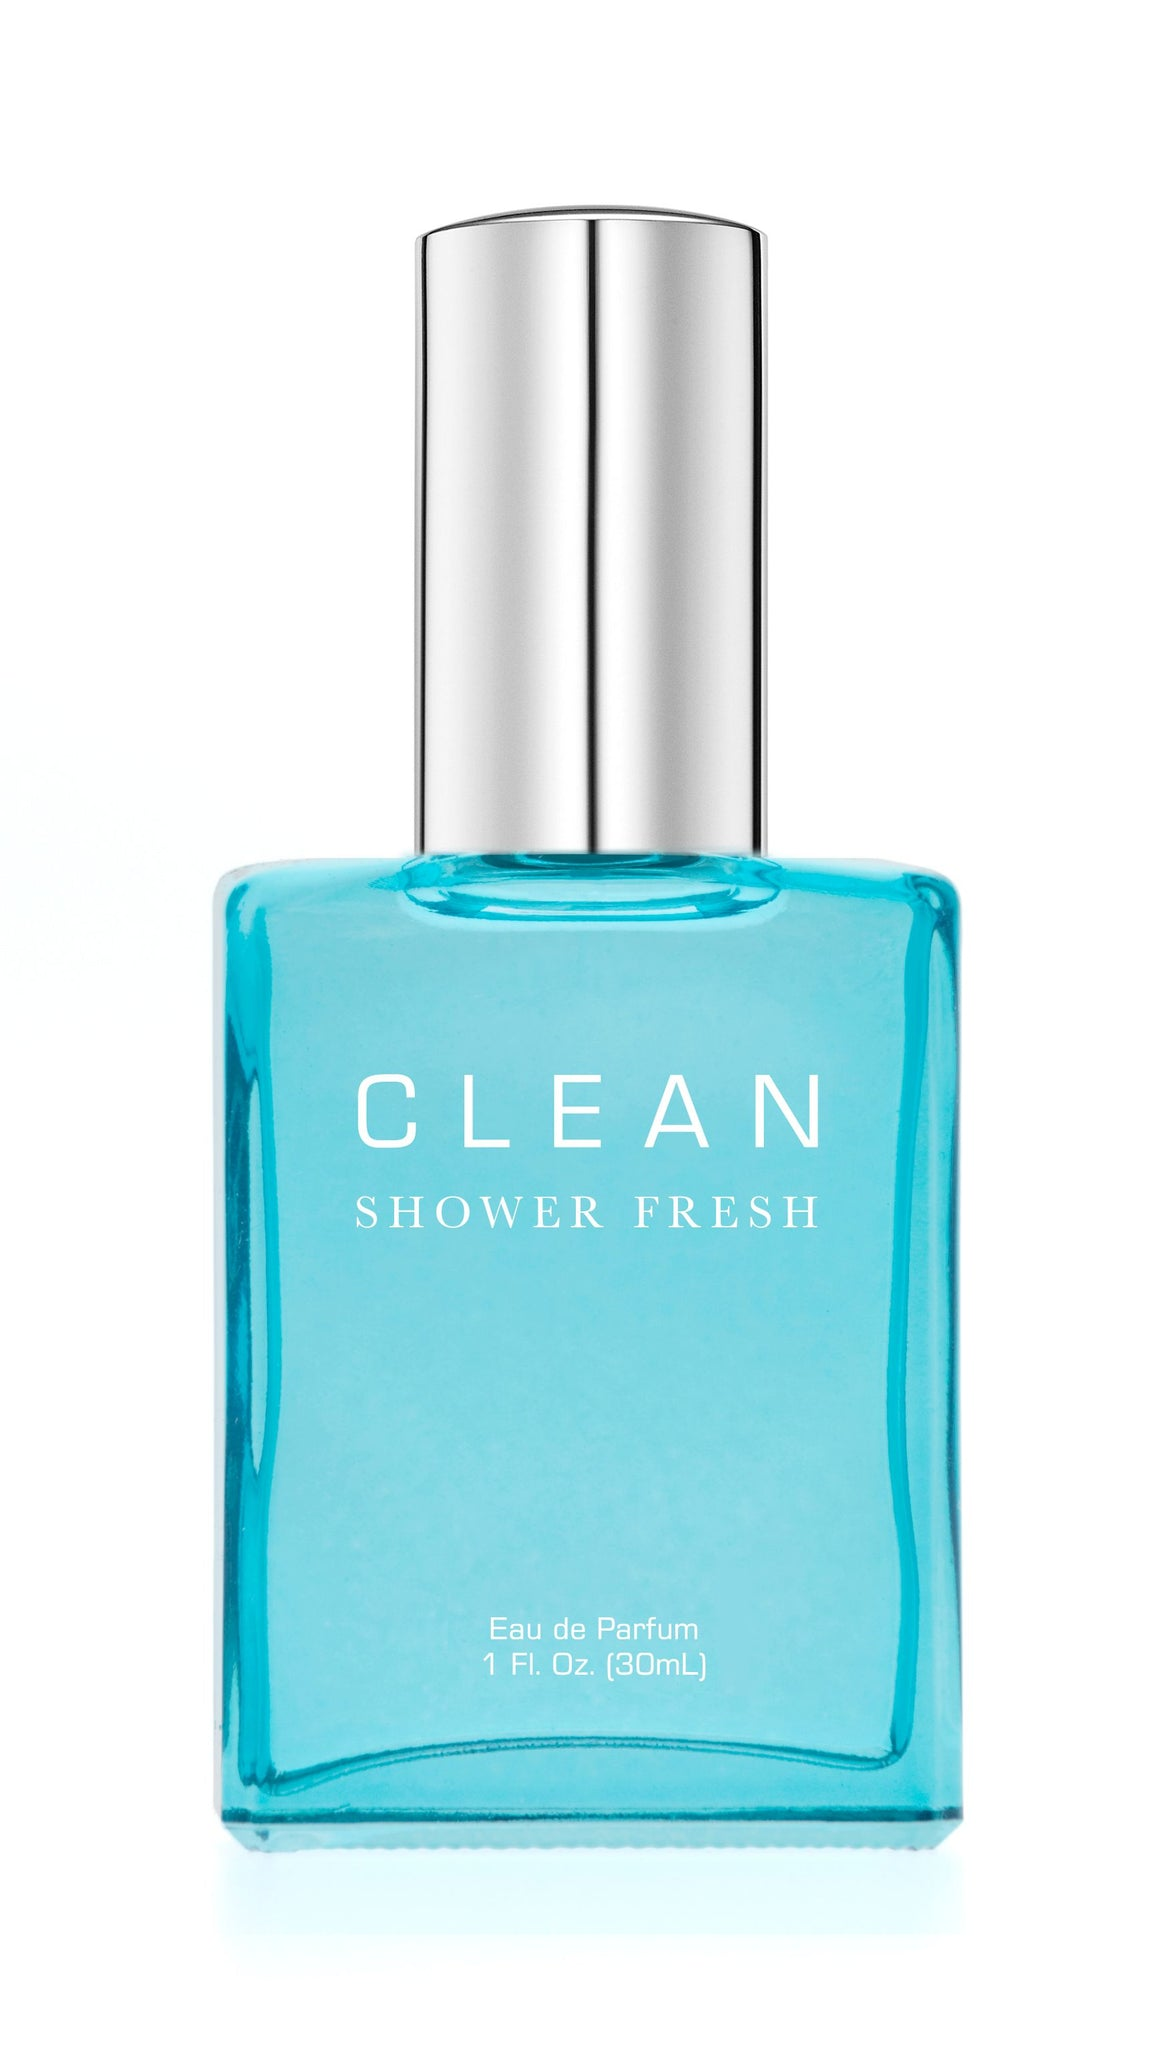 Clean Shower Fresh - Eau de Parfum 60ml